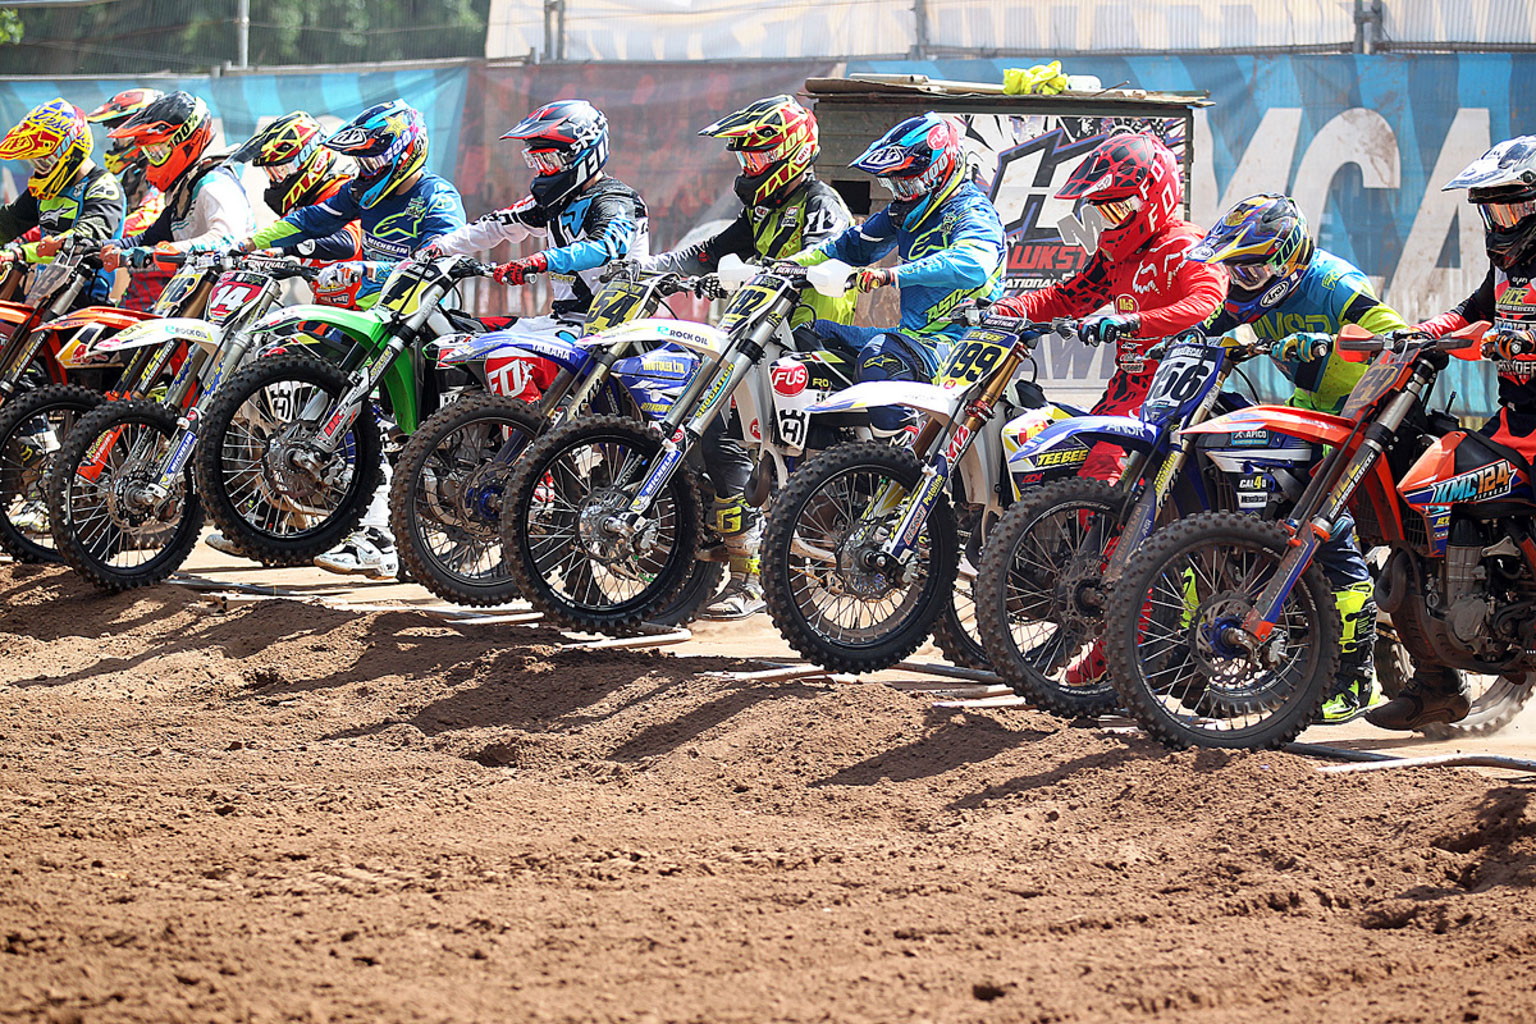 MX1 moto three start action